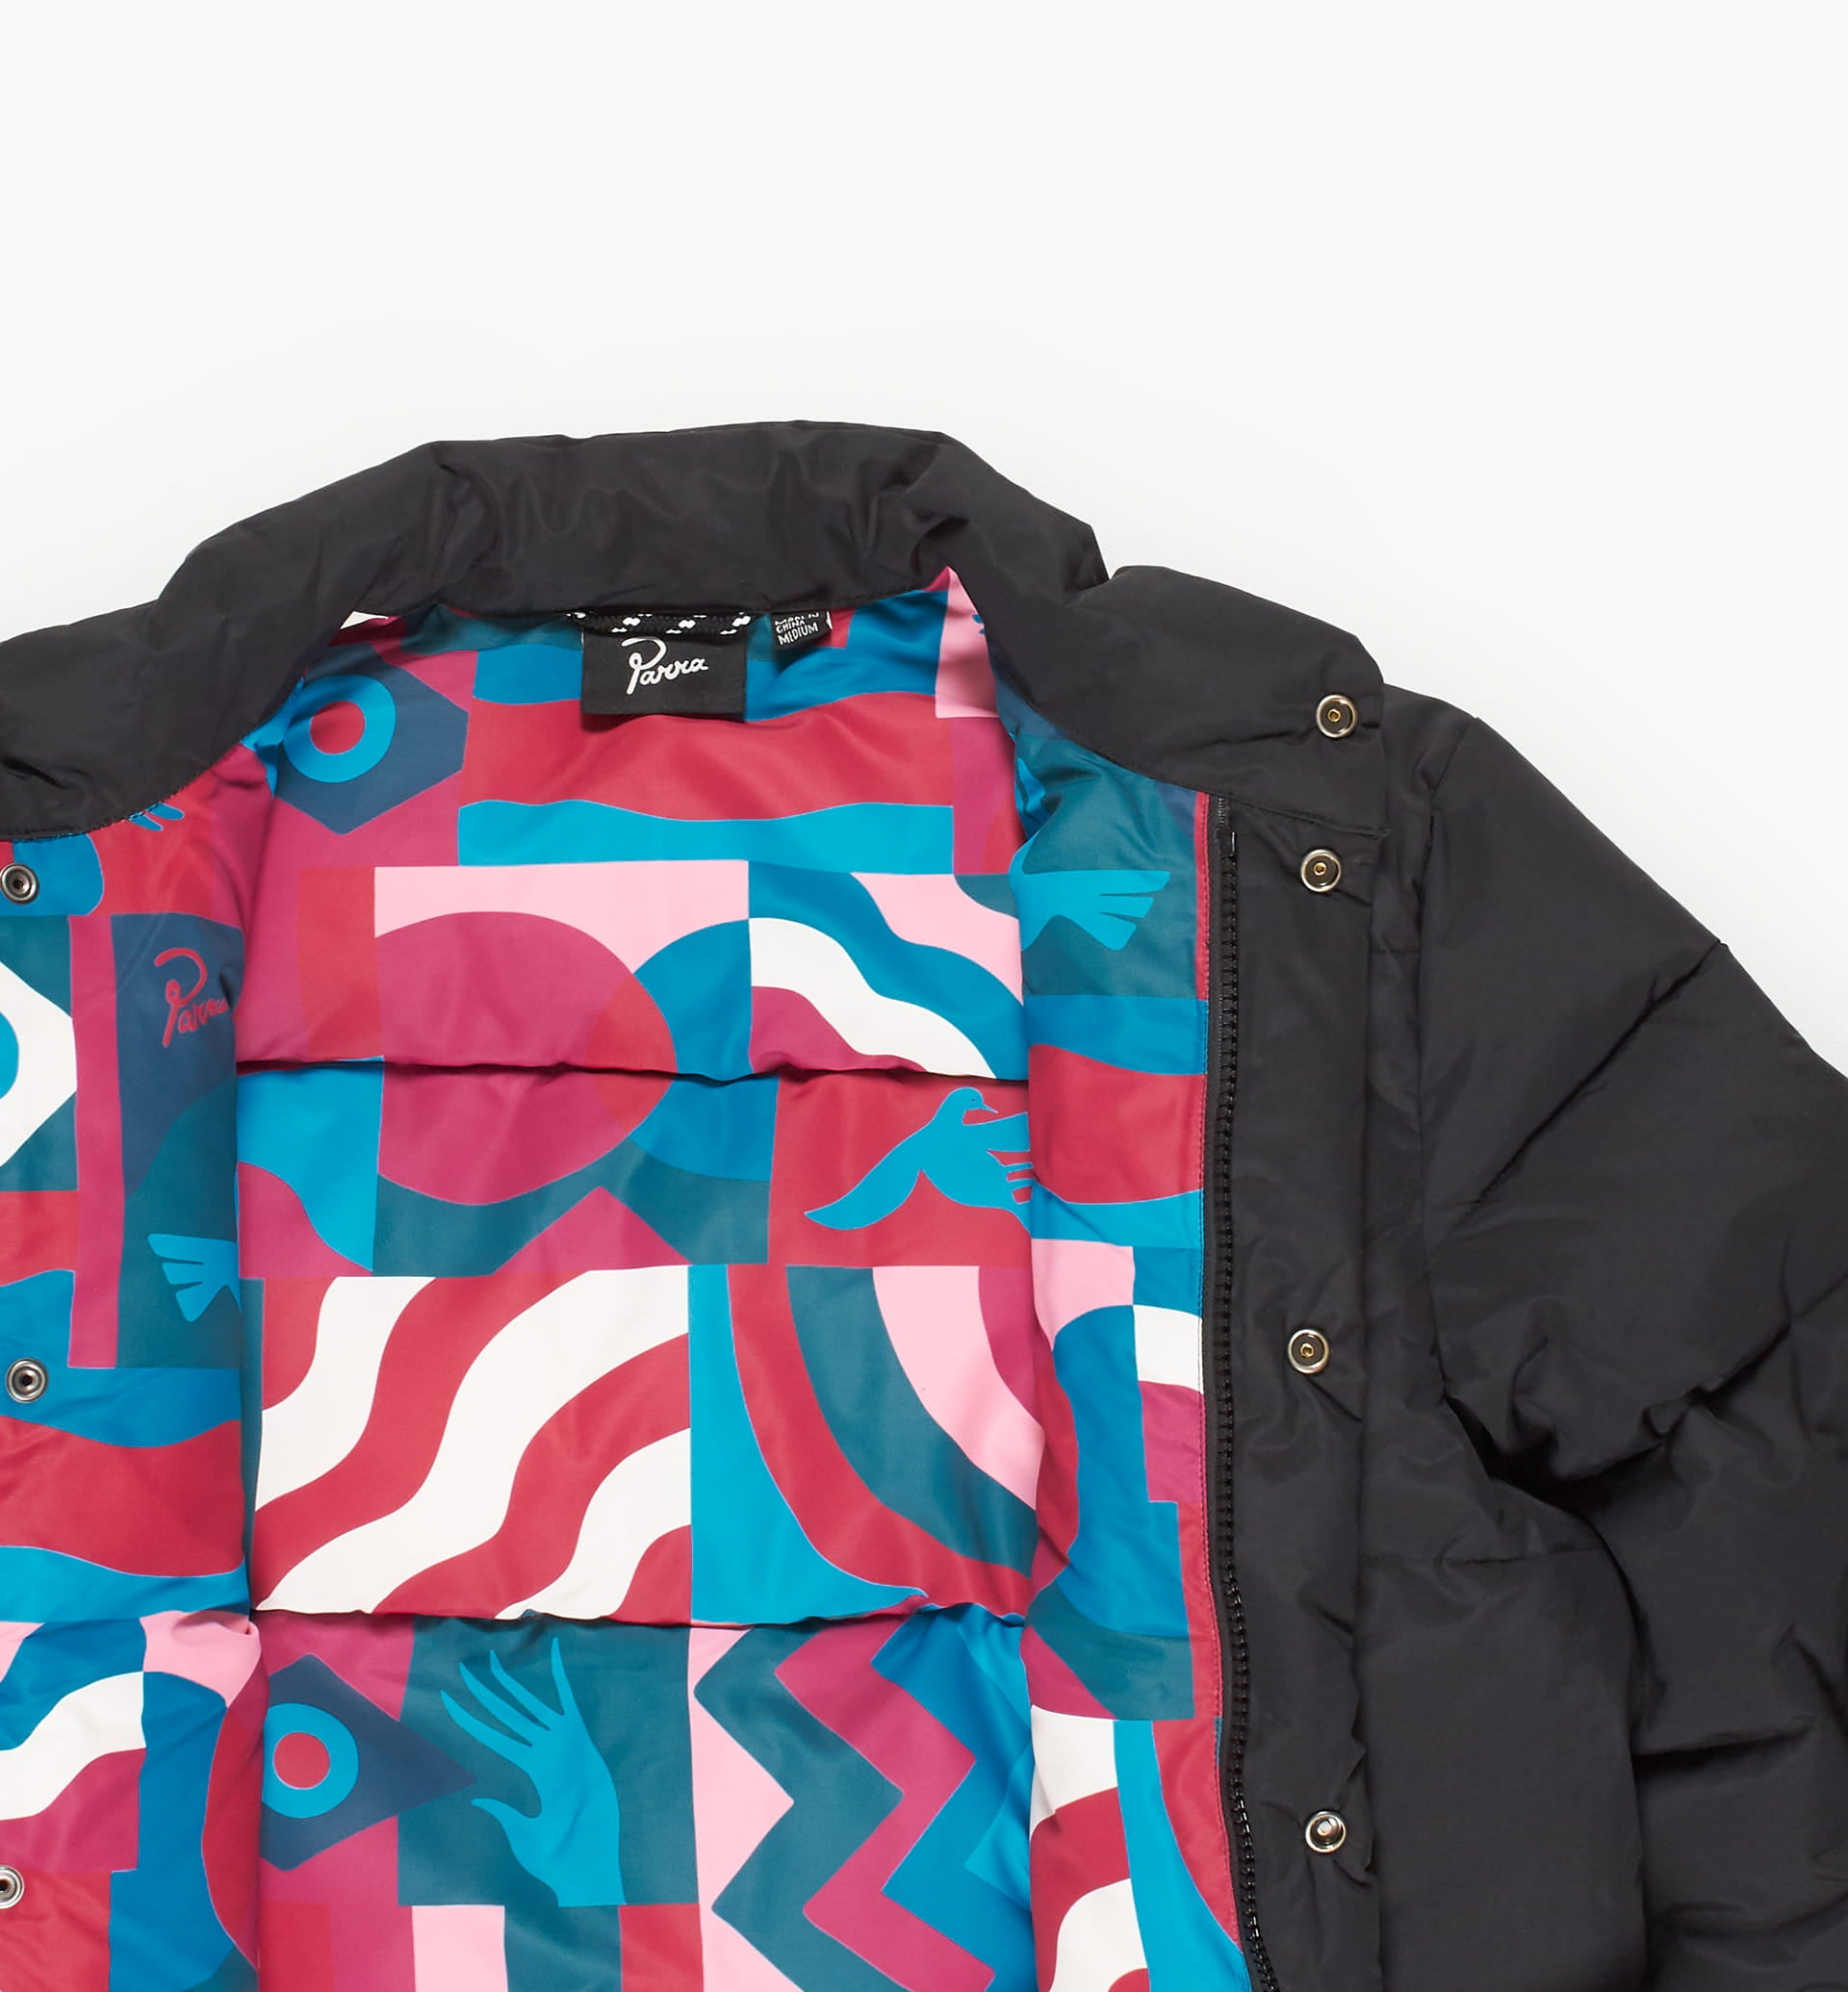 Parra - grab the flag puffer jacket